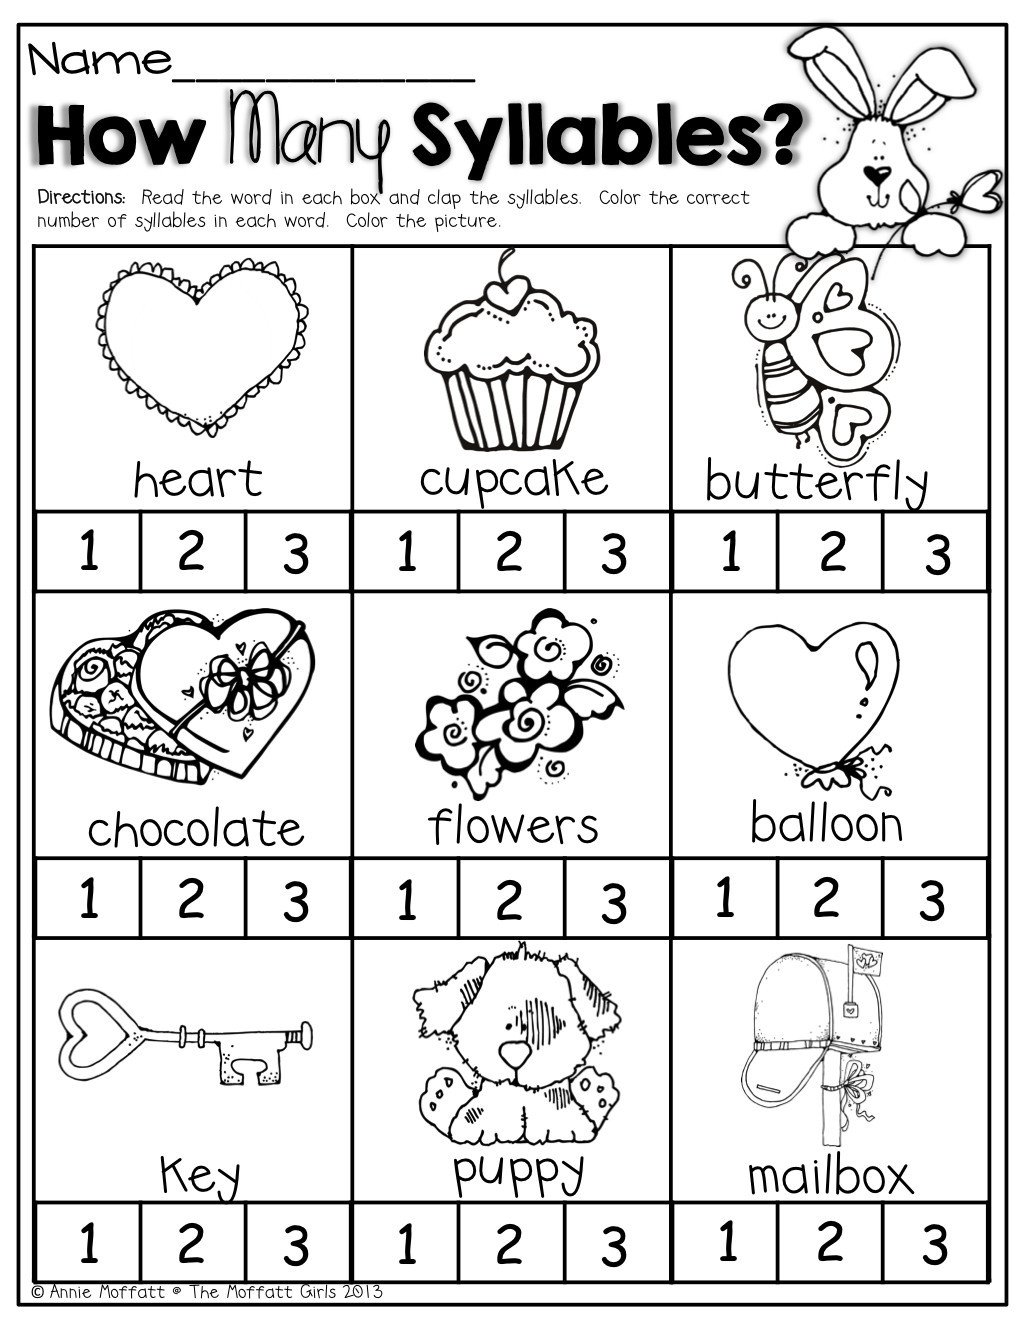 Free Syllable Worksheets for Kindergarten 20 Syllable Worksheet for Kindergarten